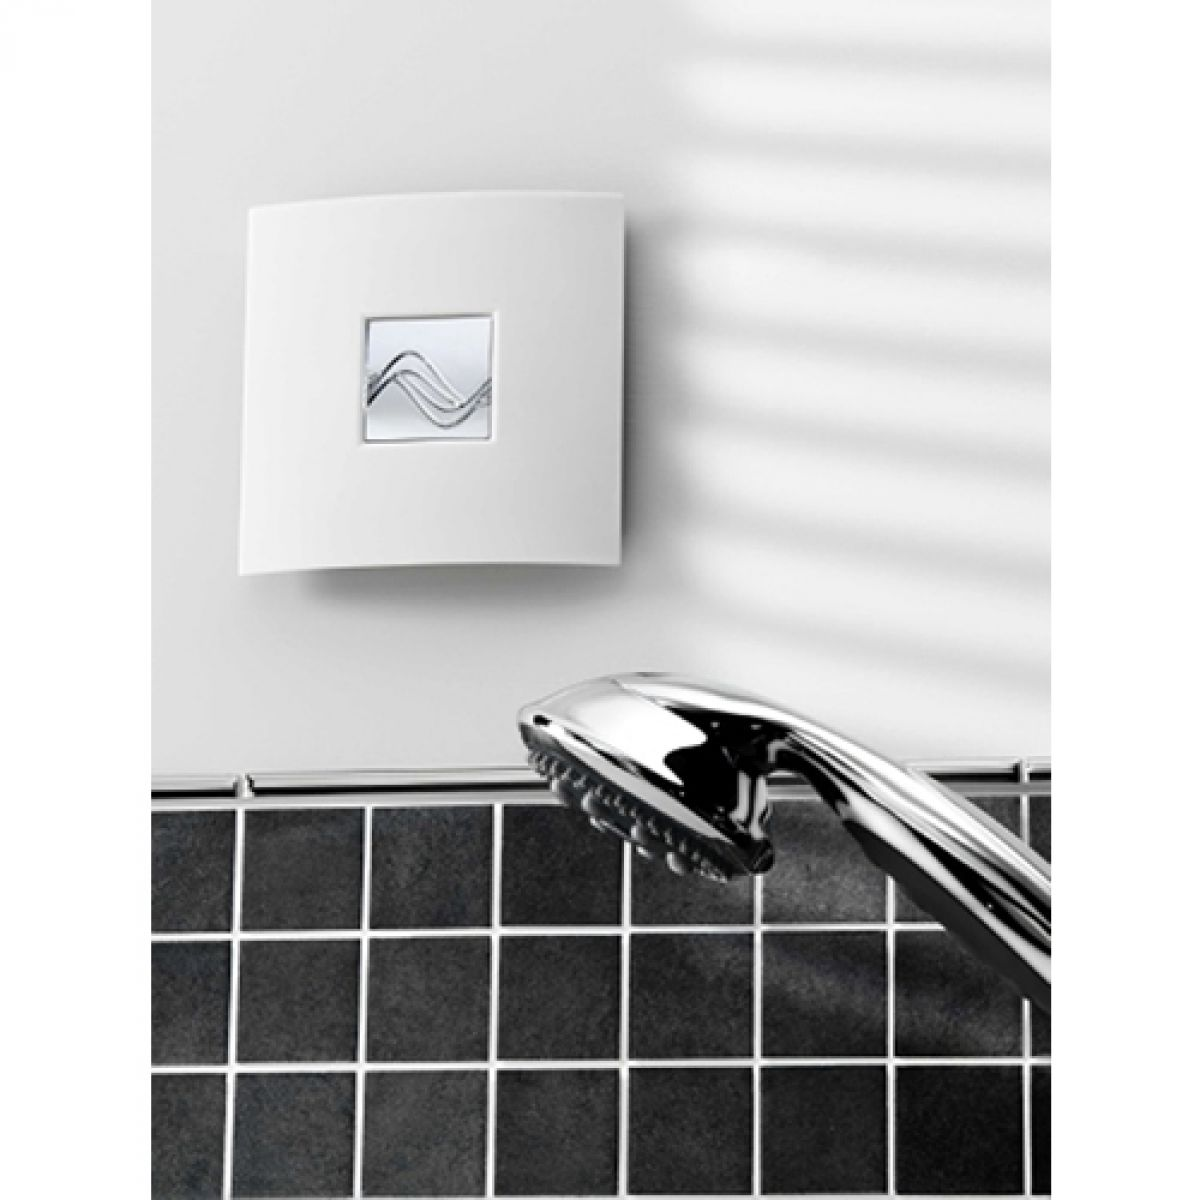 Home Bathroom Accessories Extractor Fans Zehnder Silent Wall Fan Ip24